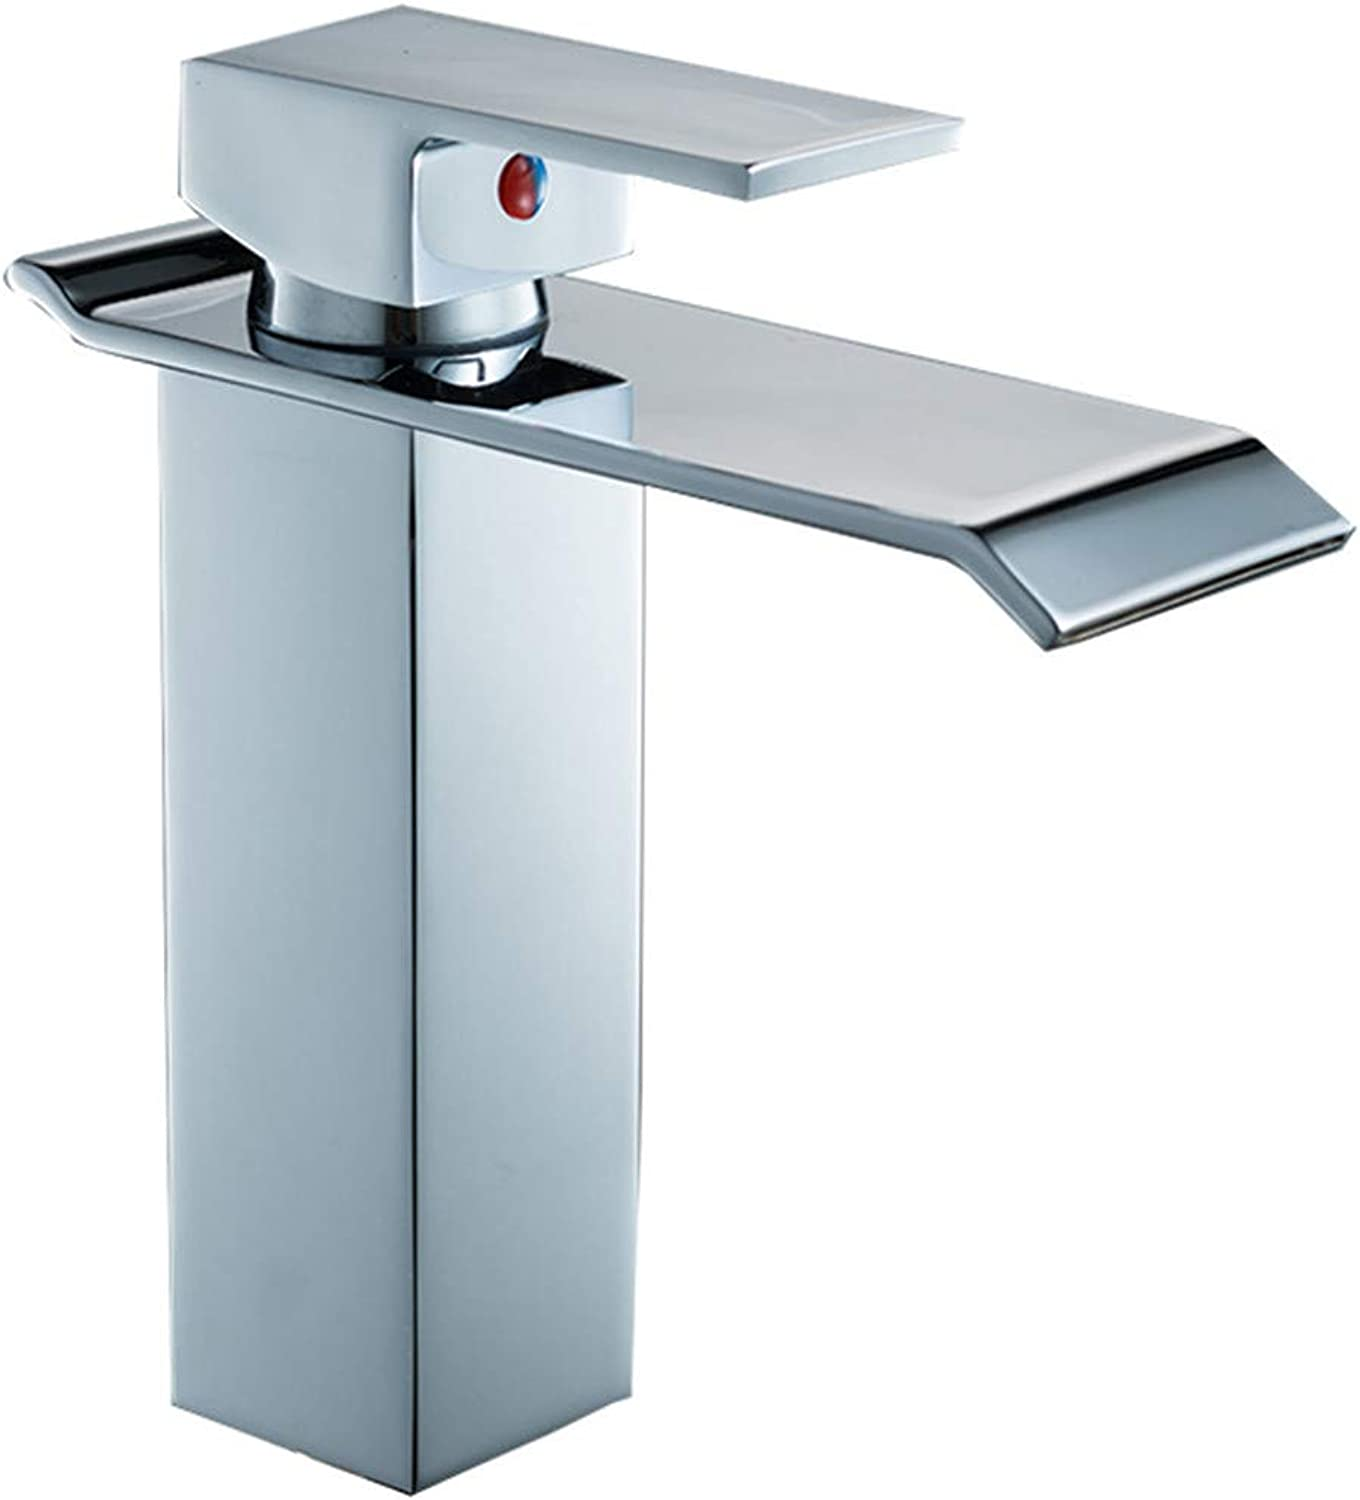 goldYING Taps Faucets??Copper Chrome Basin Faucet Project Hotel Bathroom Waterfall Basin Hot And Cold Water Mixer